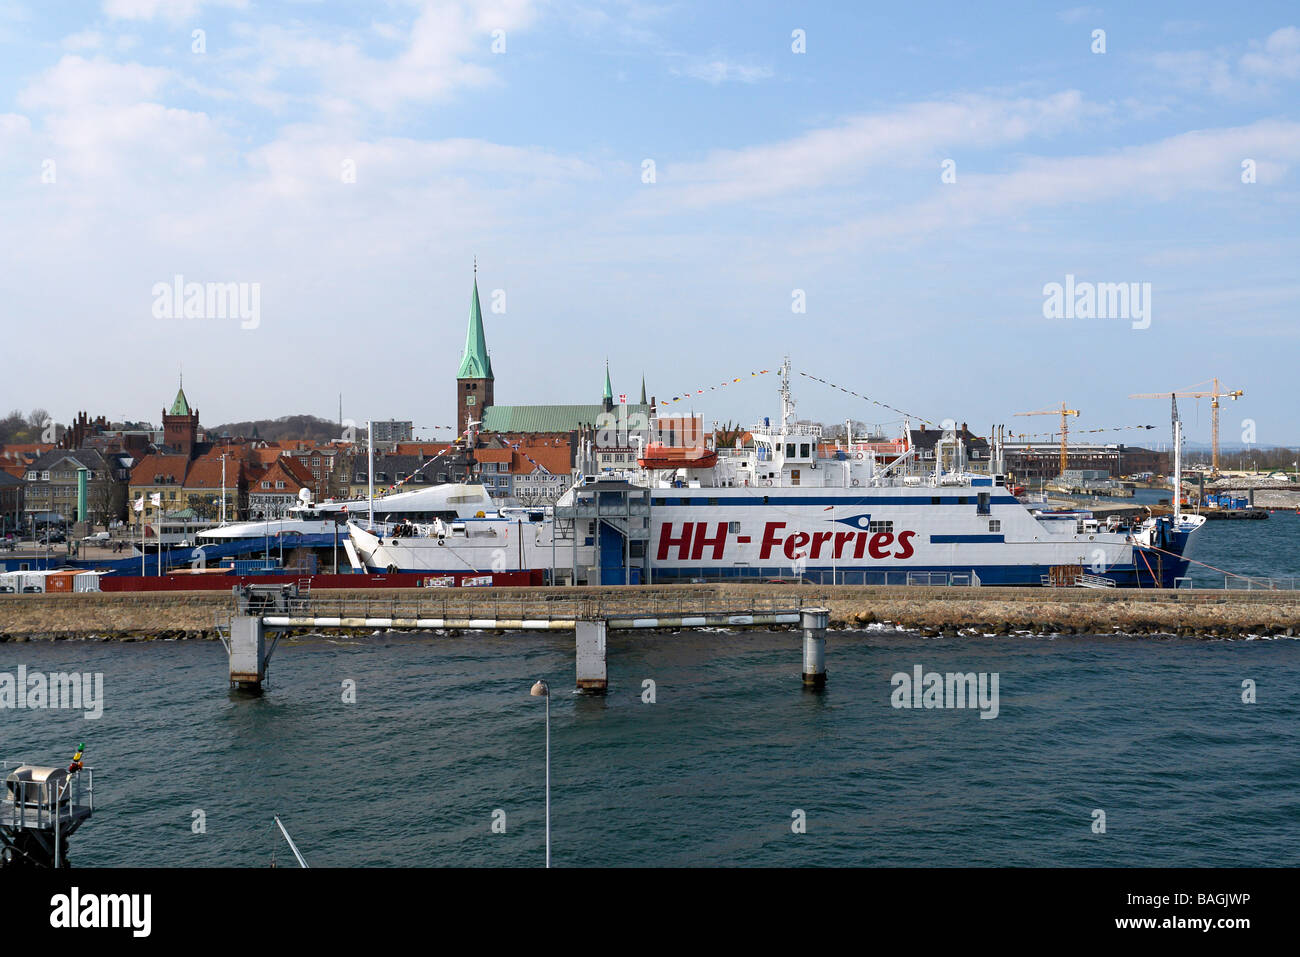 The harbour in Elsinore with one of HH ferries' Superflex ferries berthed - Stock Image